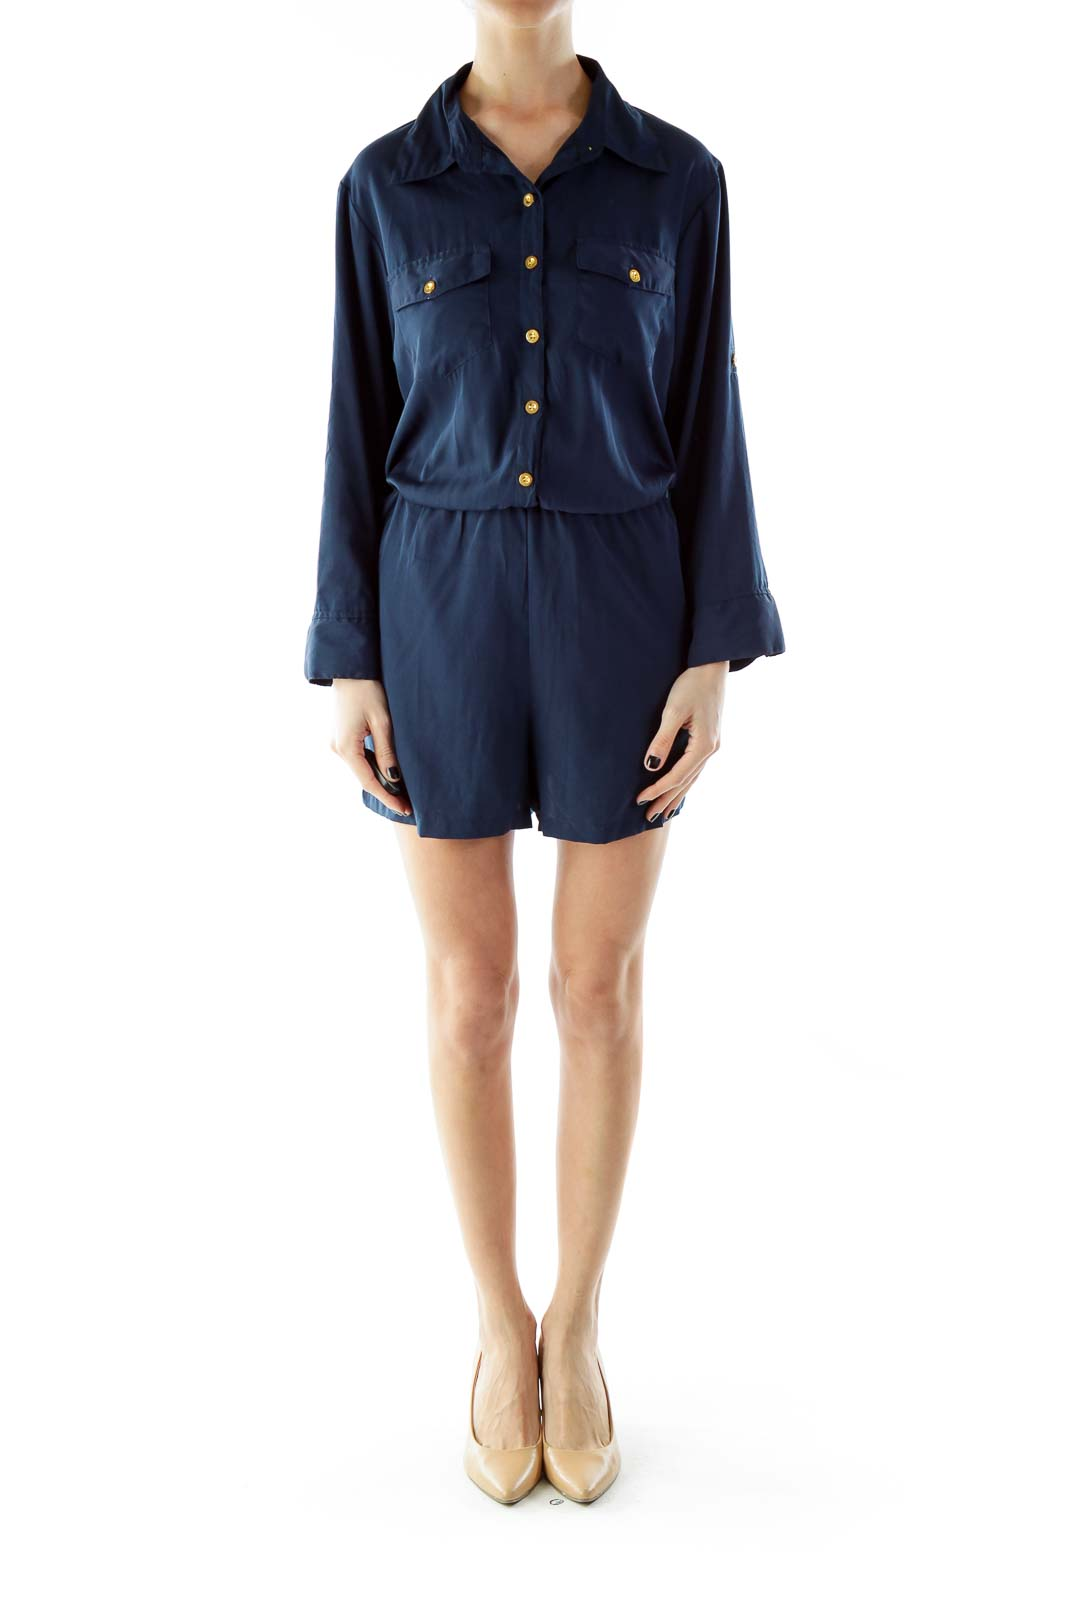 Navy Pocketed Romper